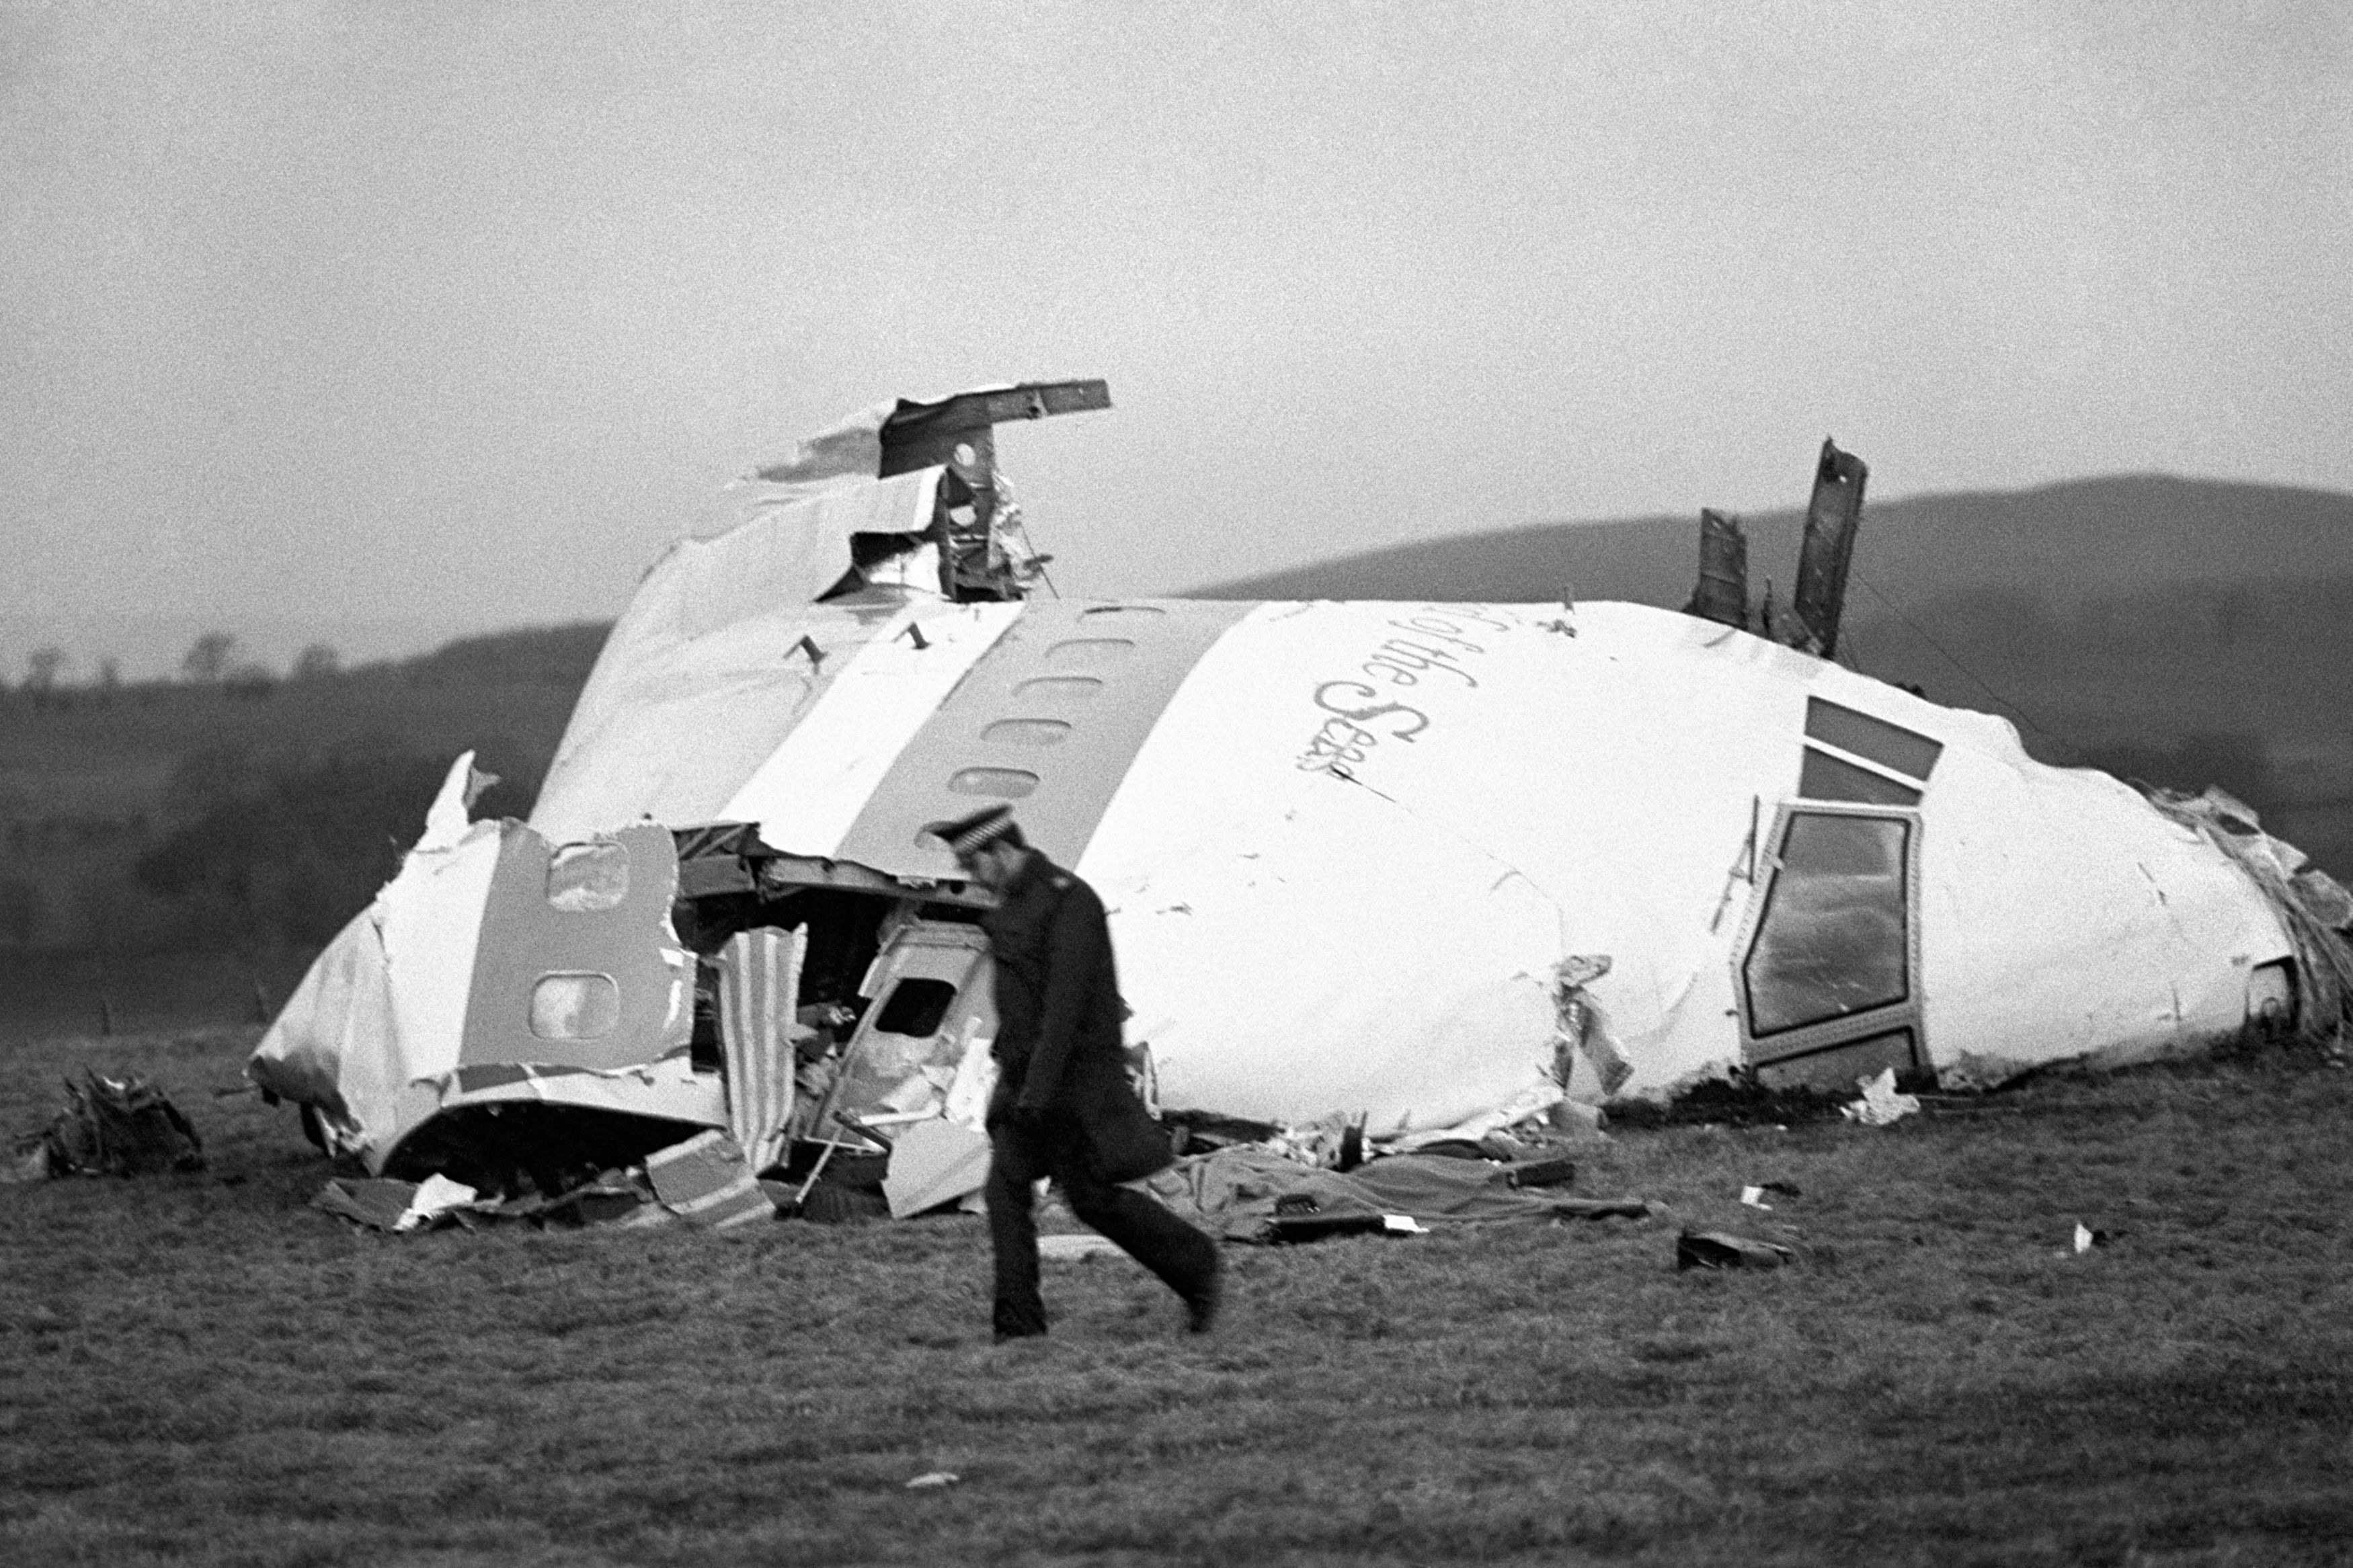 22 December 1988. The nose section of the crashed Pan Am jumbo jet in Lockerbie. (PA).